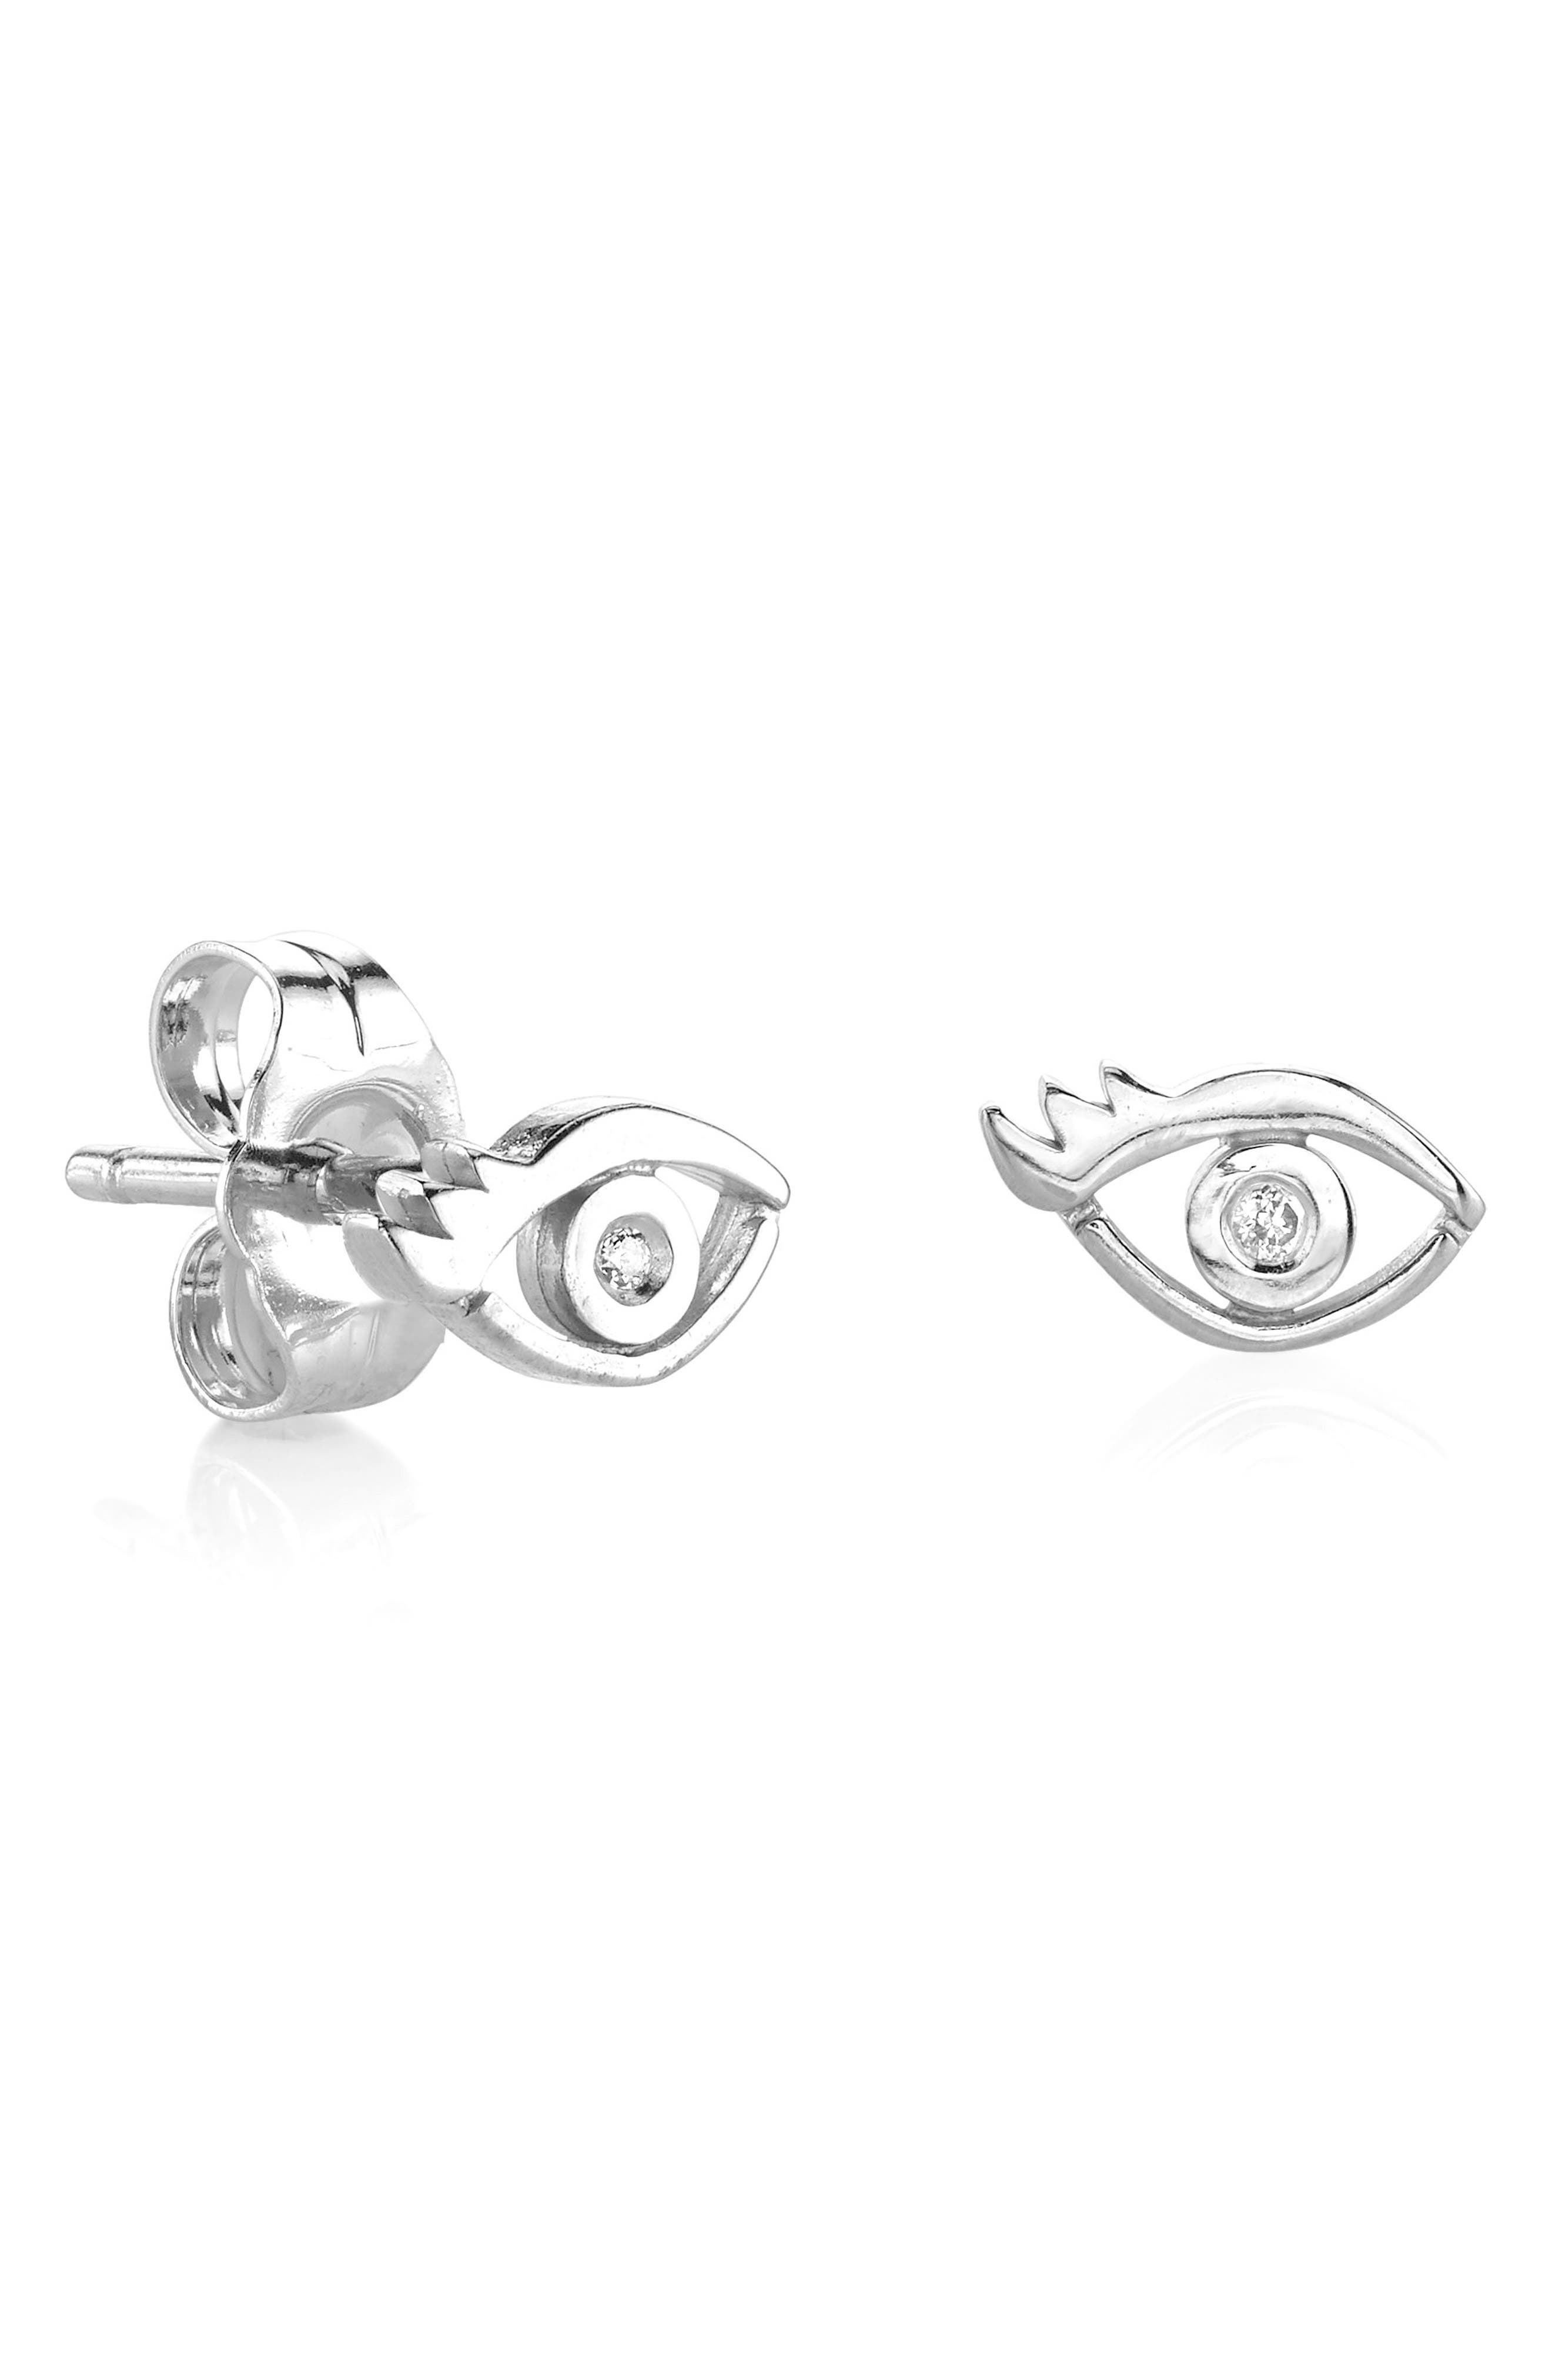 Evil Eye Diamond Stud Earrings,                             Main thumbnail 1, color,                             Silver